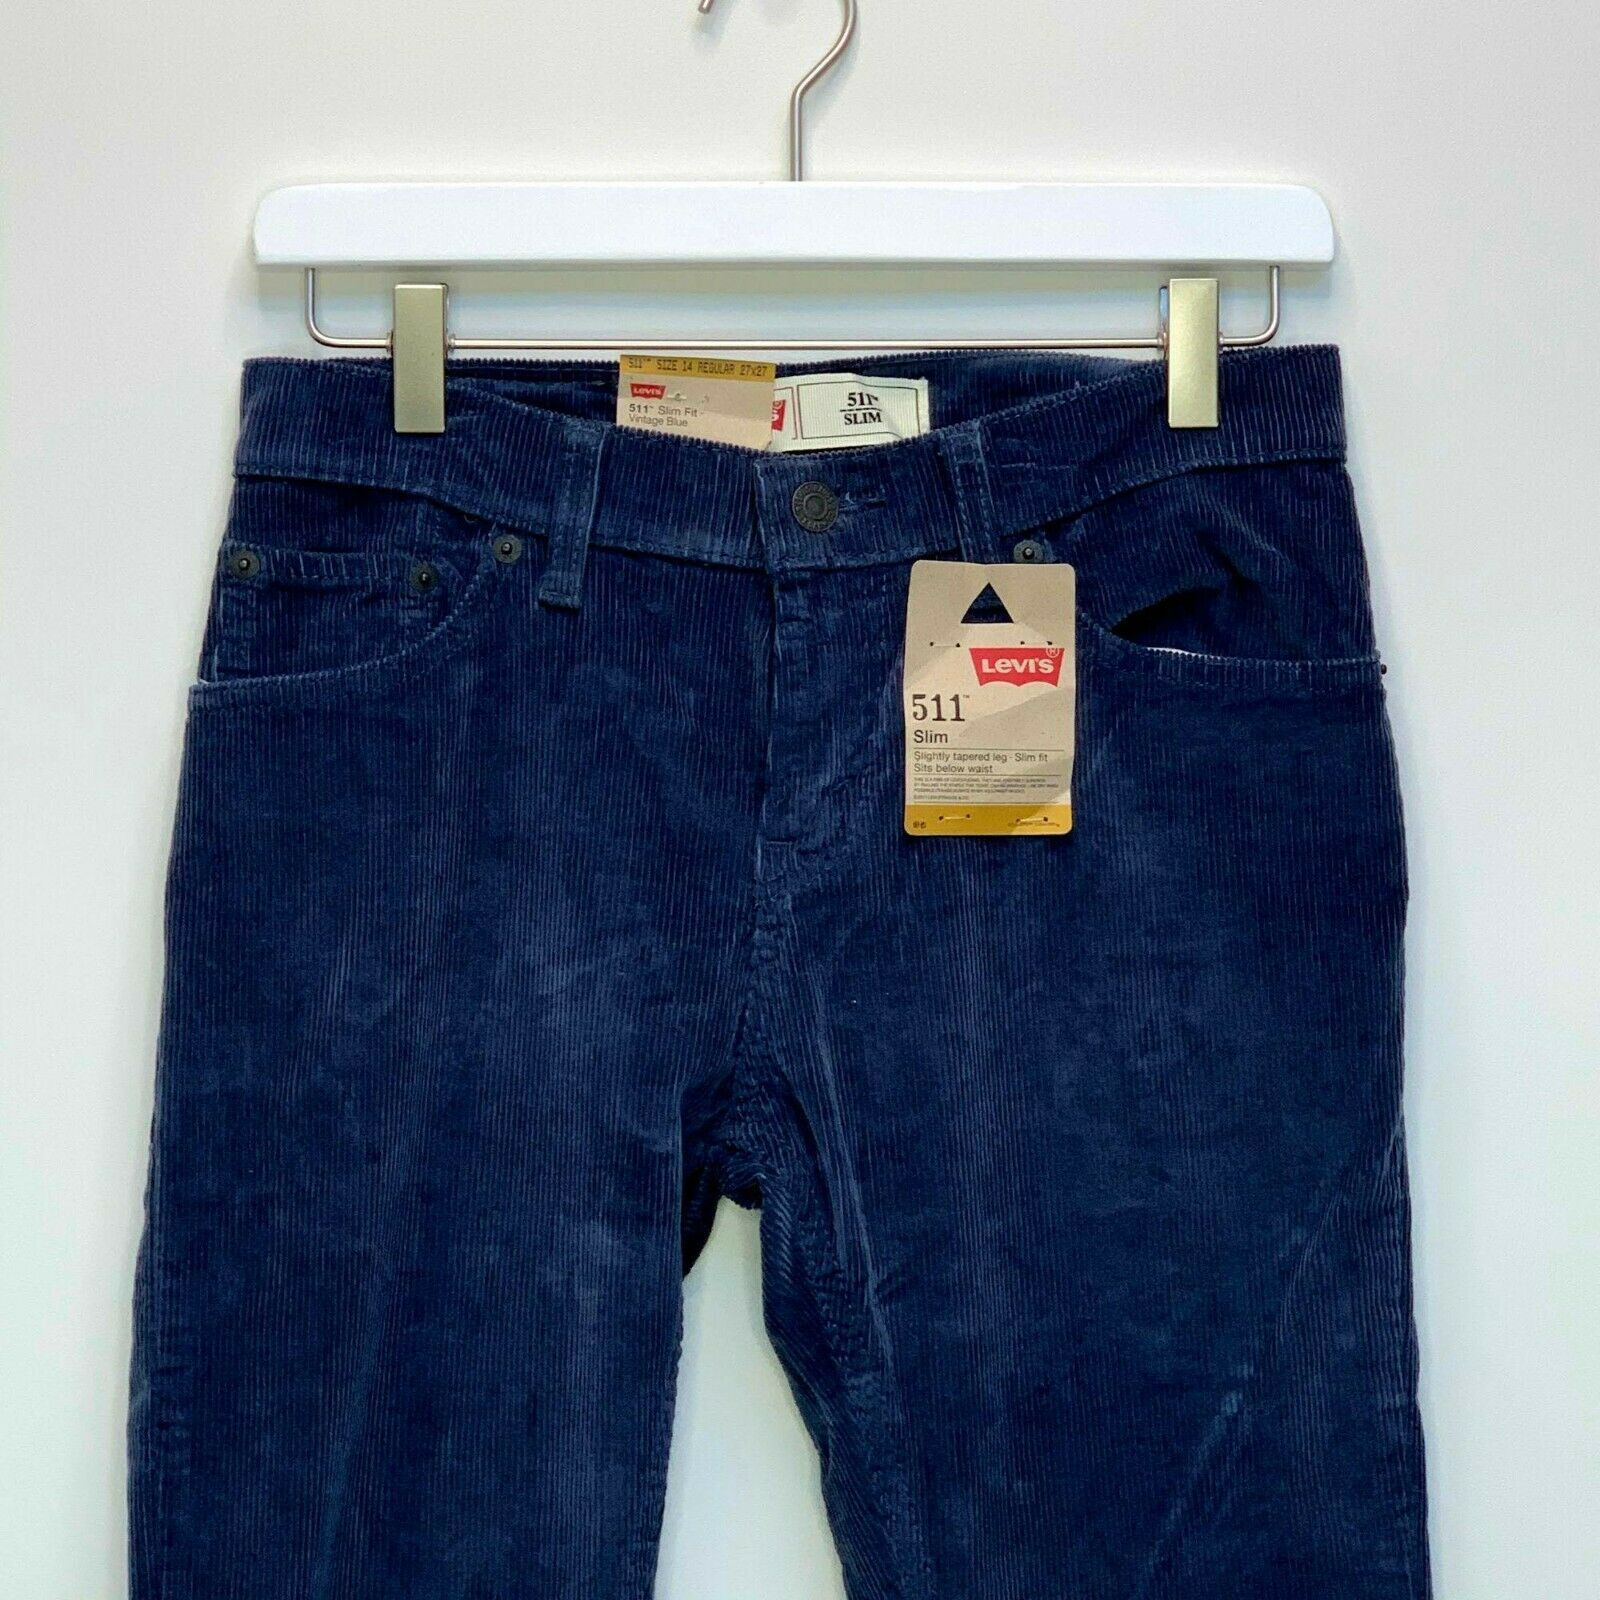 Primary image for Levi's 511 Boys Slim Fit Blue Corduroys Size 14